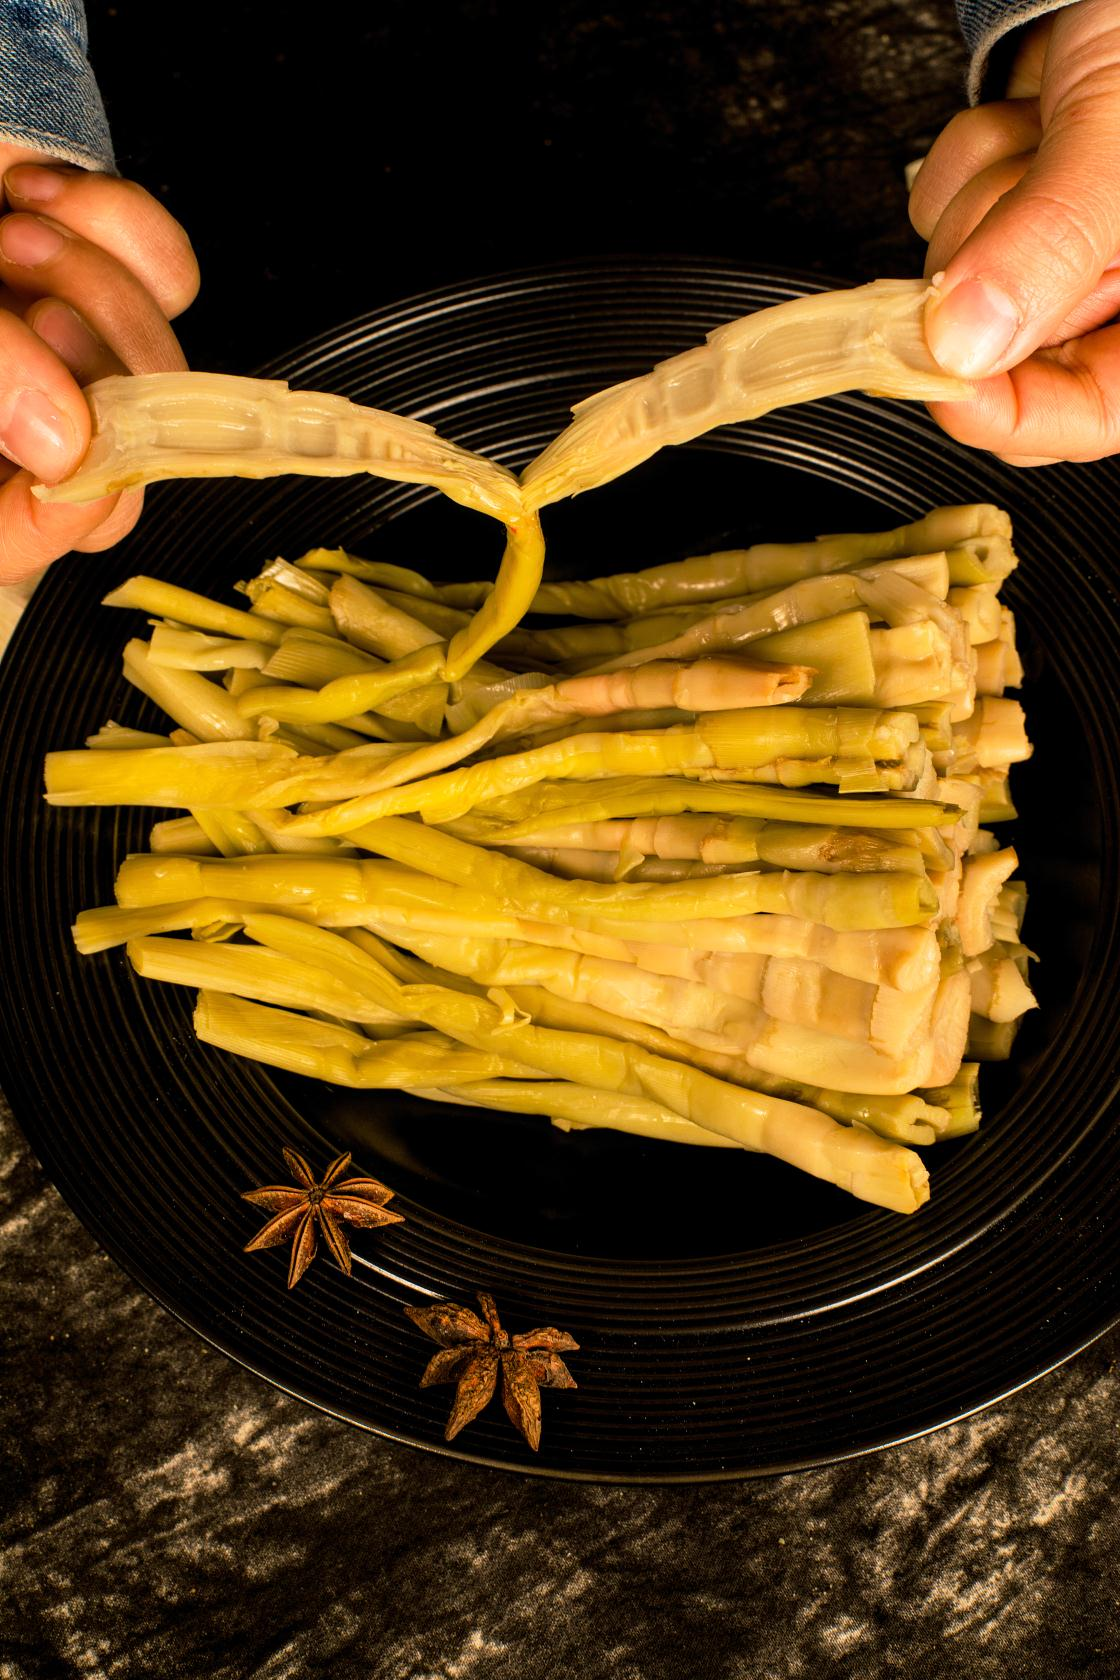 Wholesale Green Asparagus Fresh/Canned/Frozen